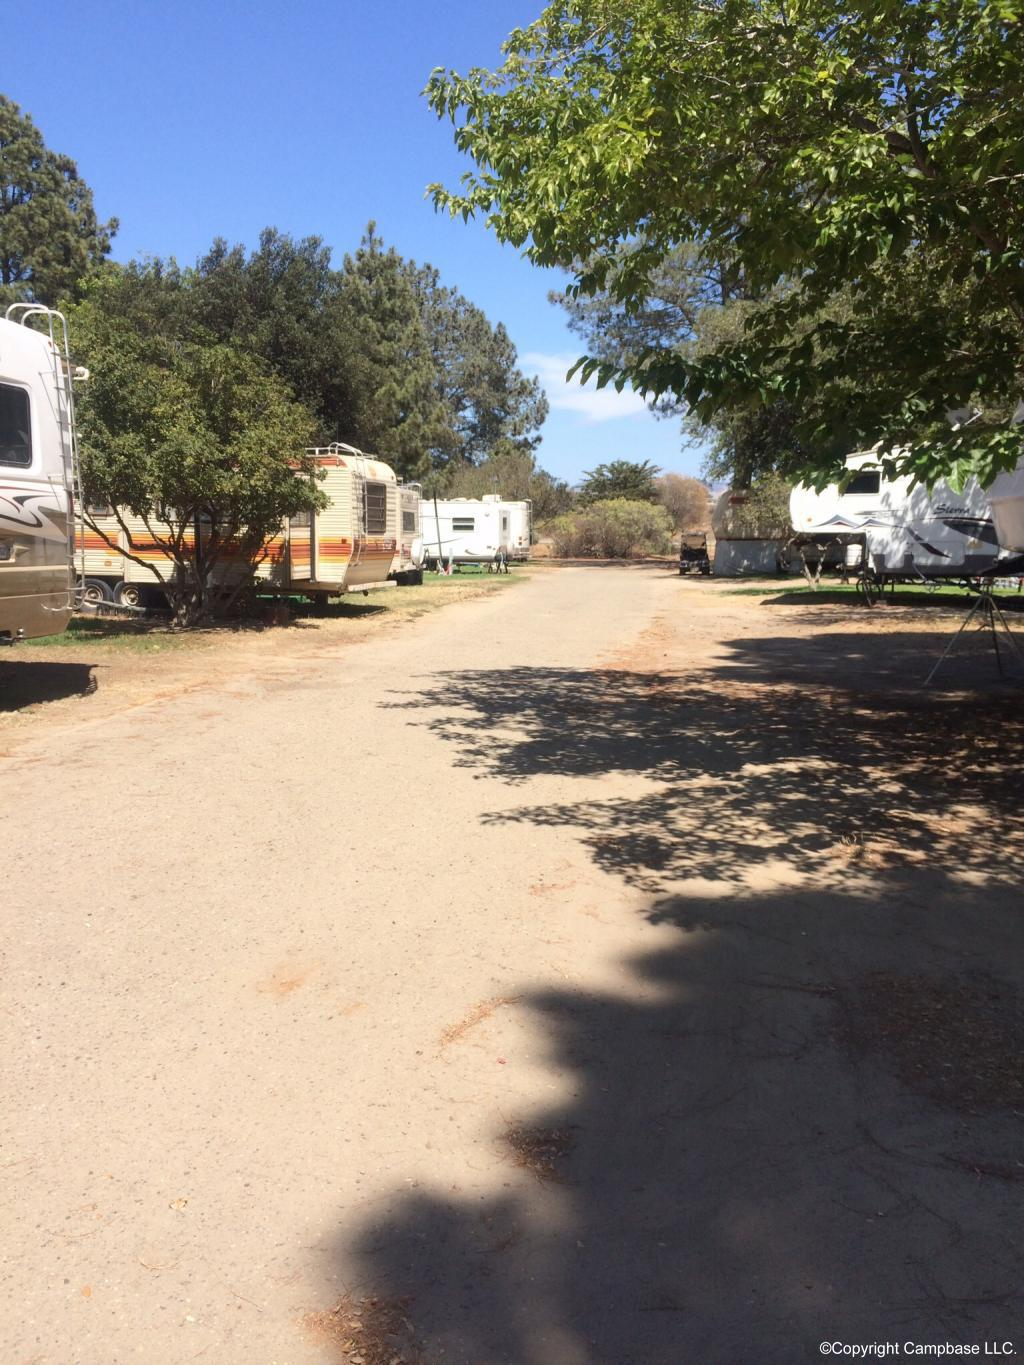 Santa Maria Pines Campground Santa Maria California